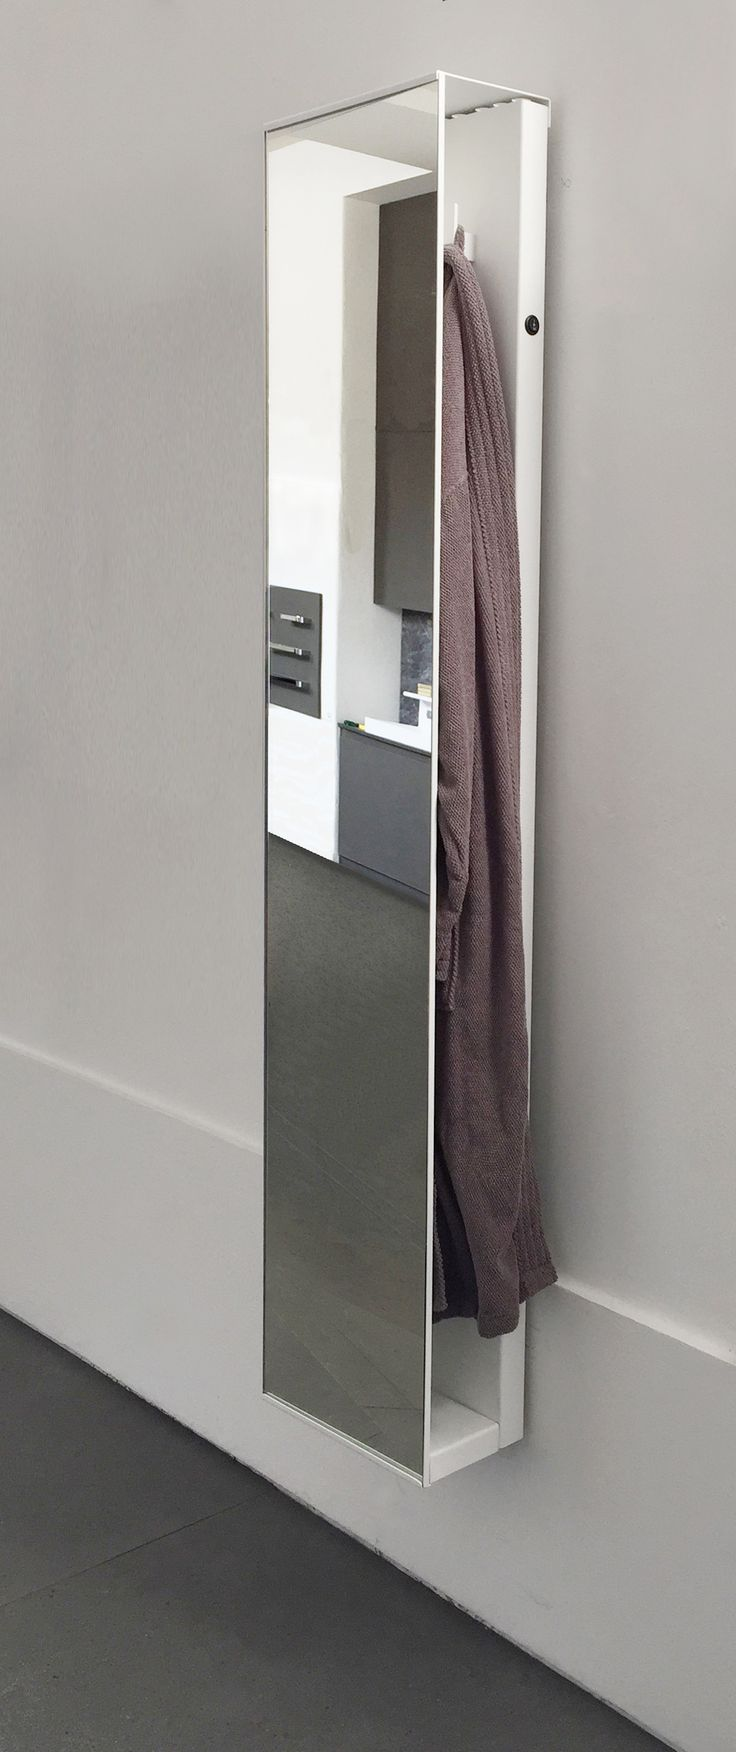 Heated Bathroom Mirrors 17 Best Ideas About Heated Bathroom Mirror On Pinterest Heated